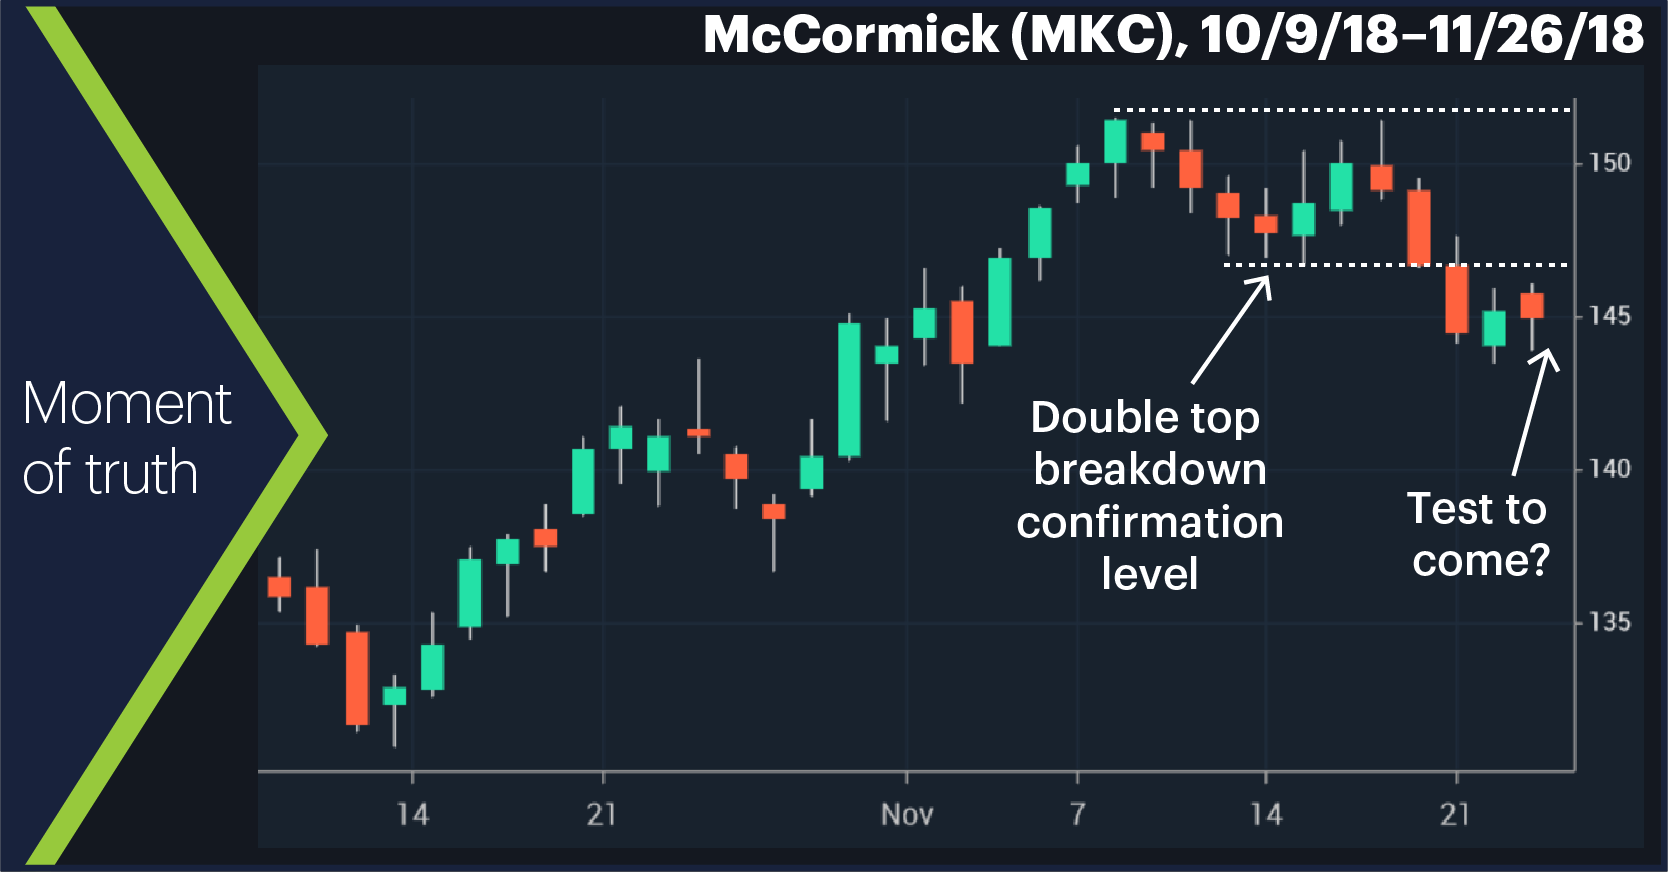 McCormick (MKC), 10/9/18–11/26/18. Moment of truth